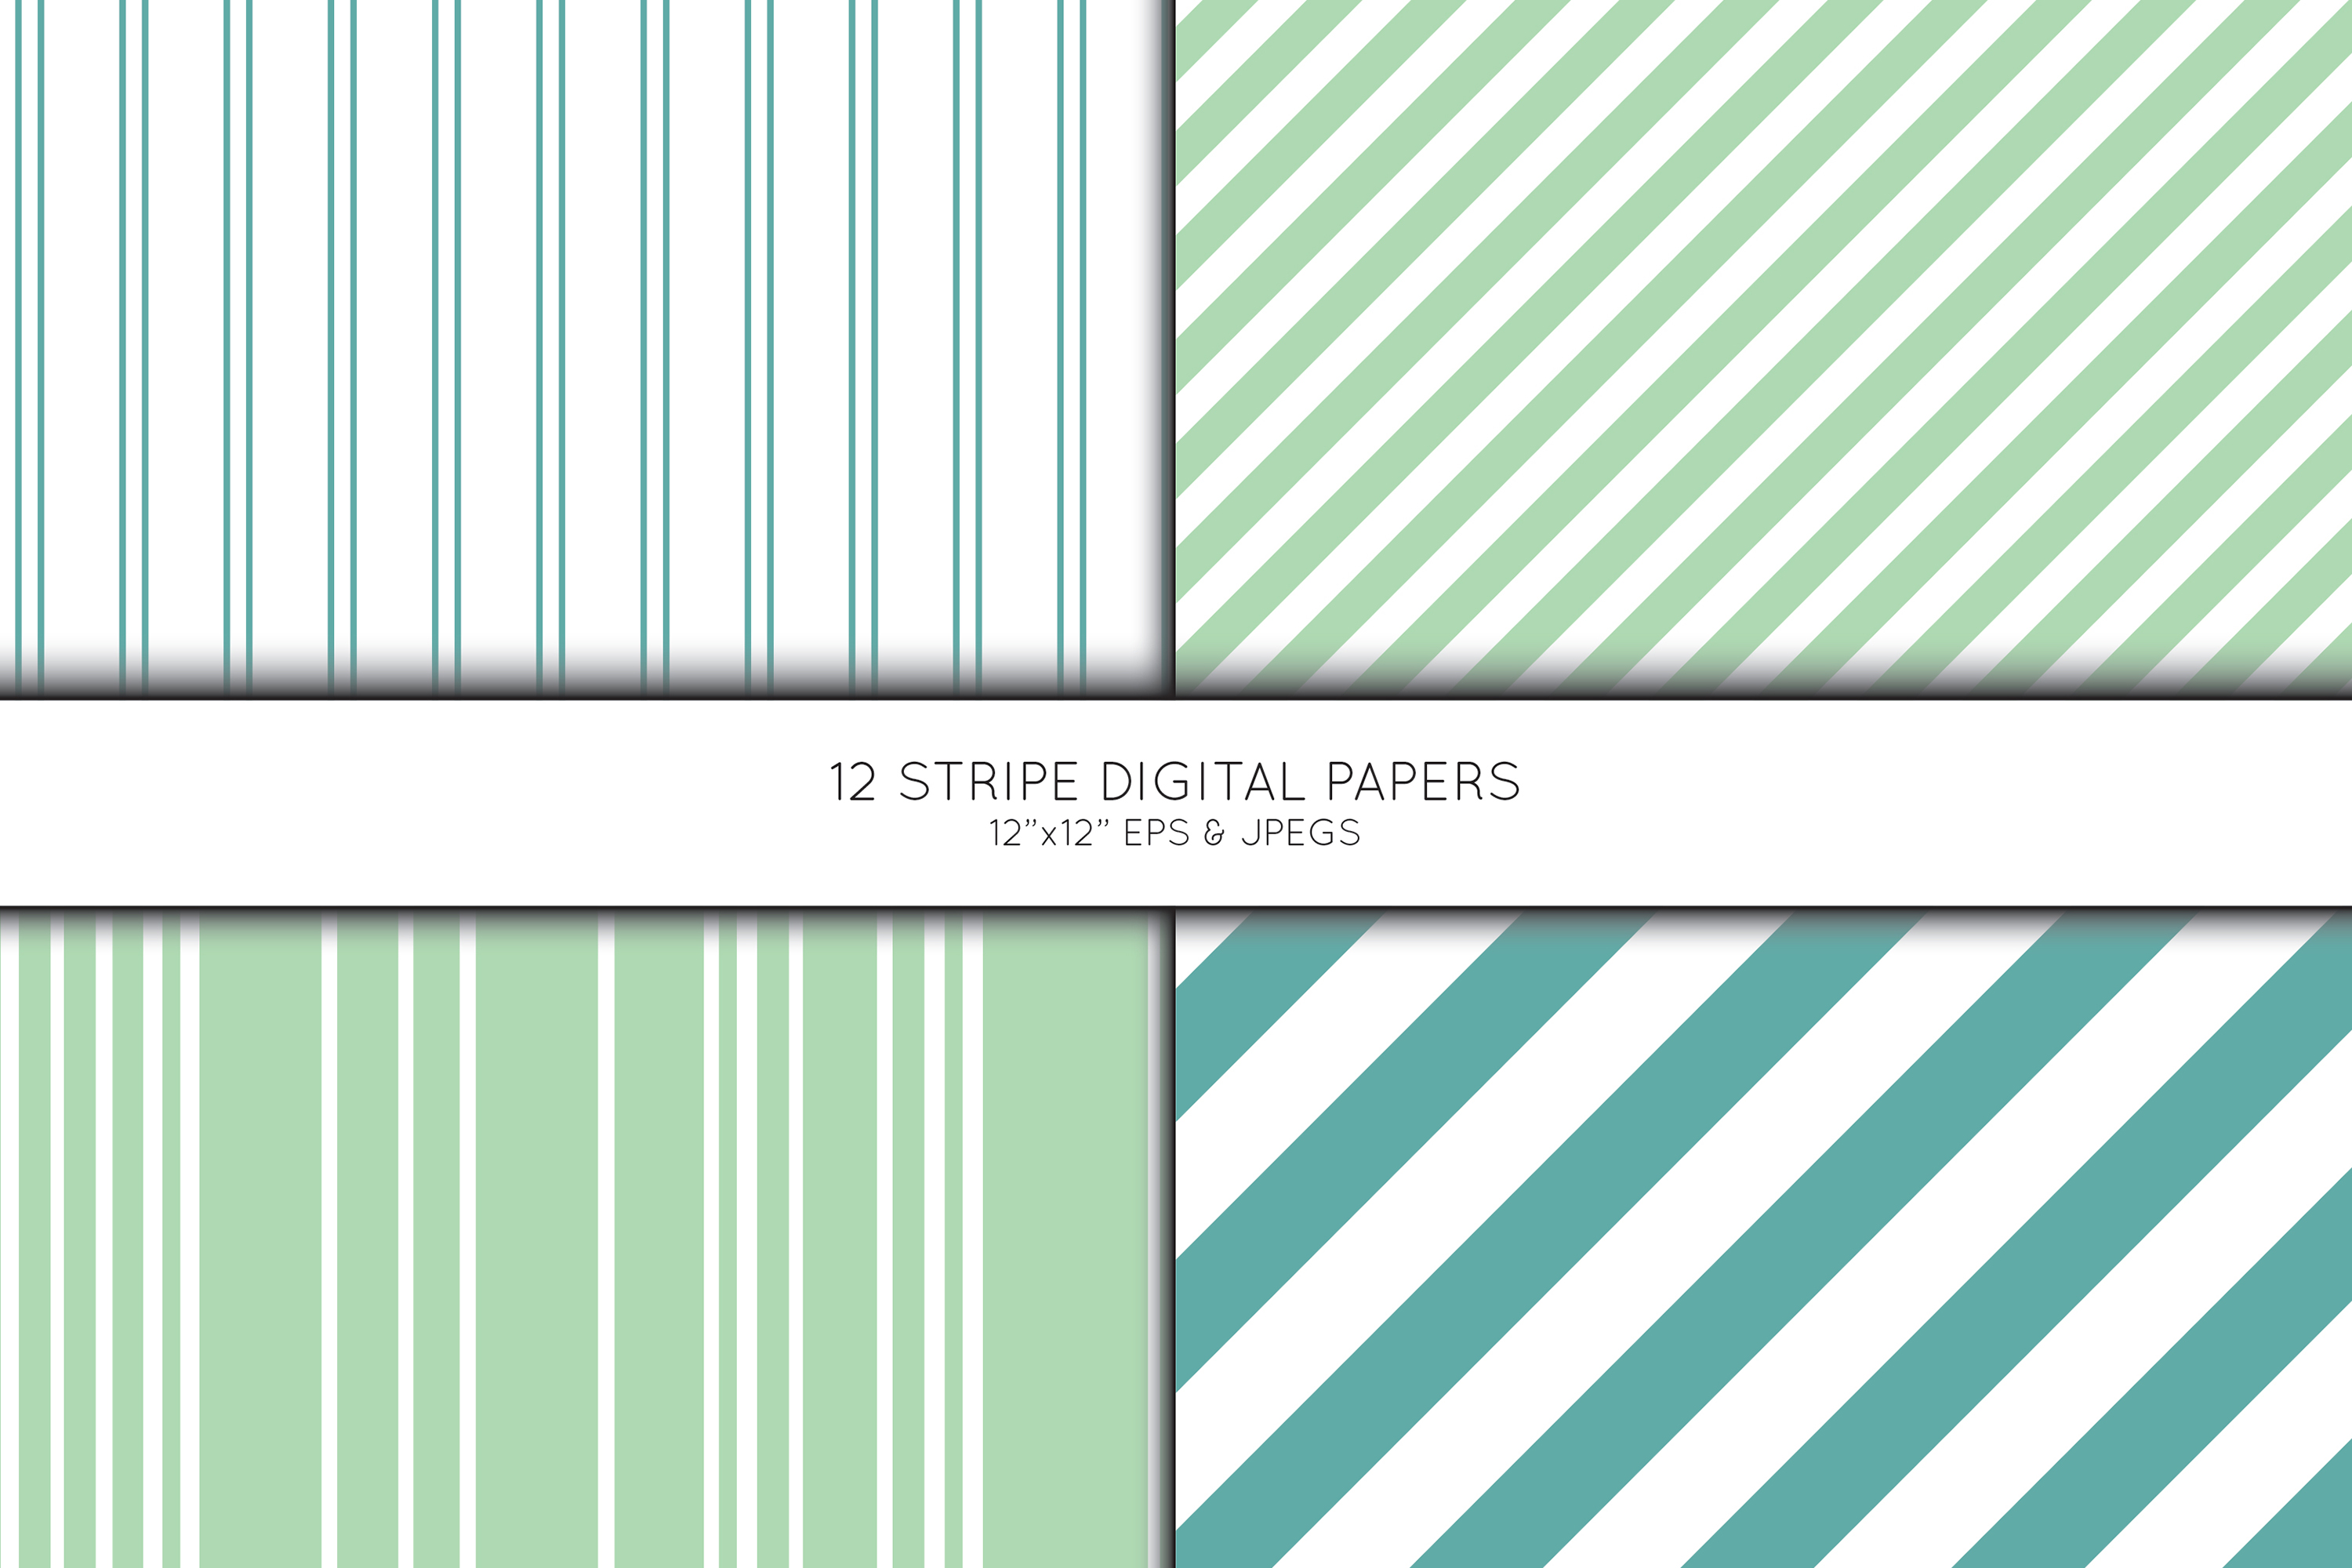 Stripe Digital Paper, Striped Scrapbook paper example image 3